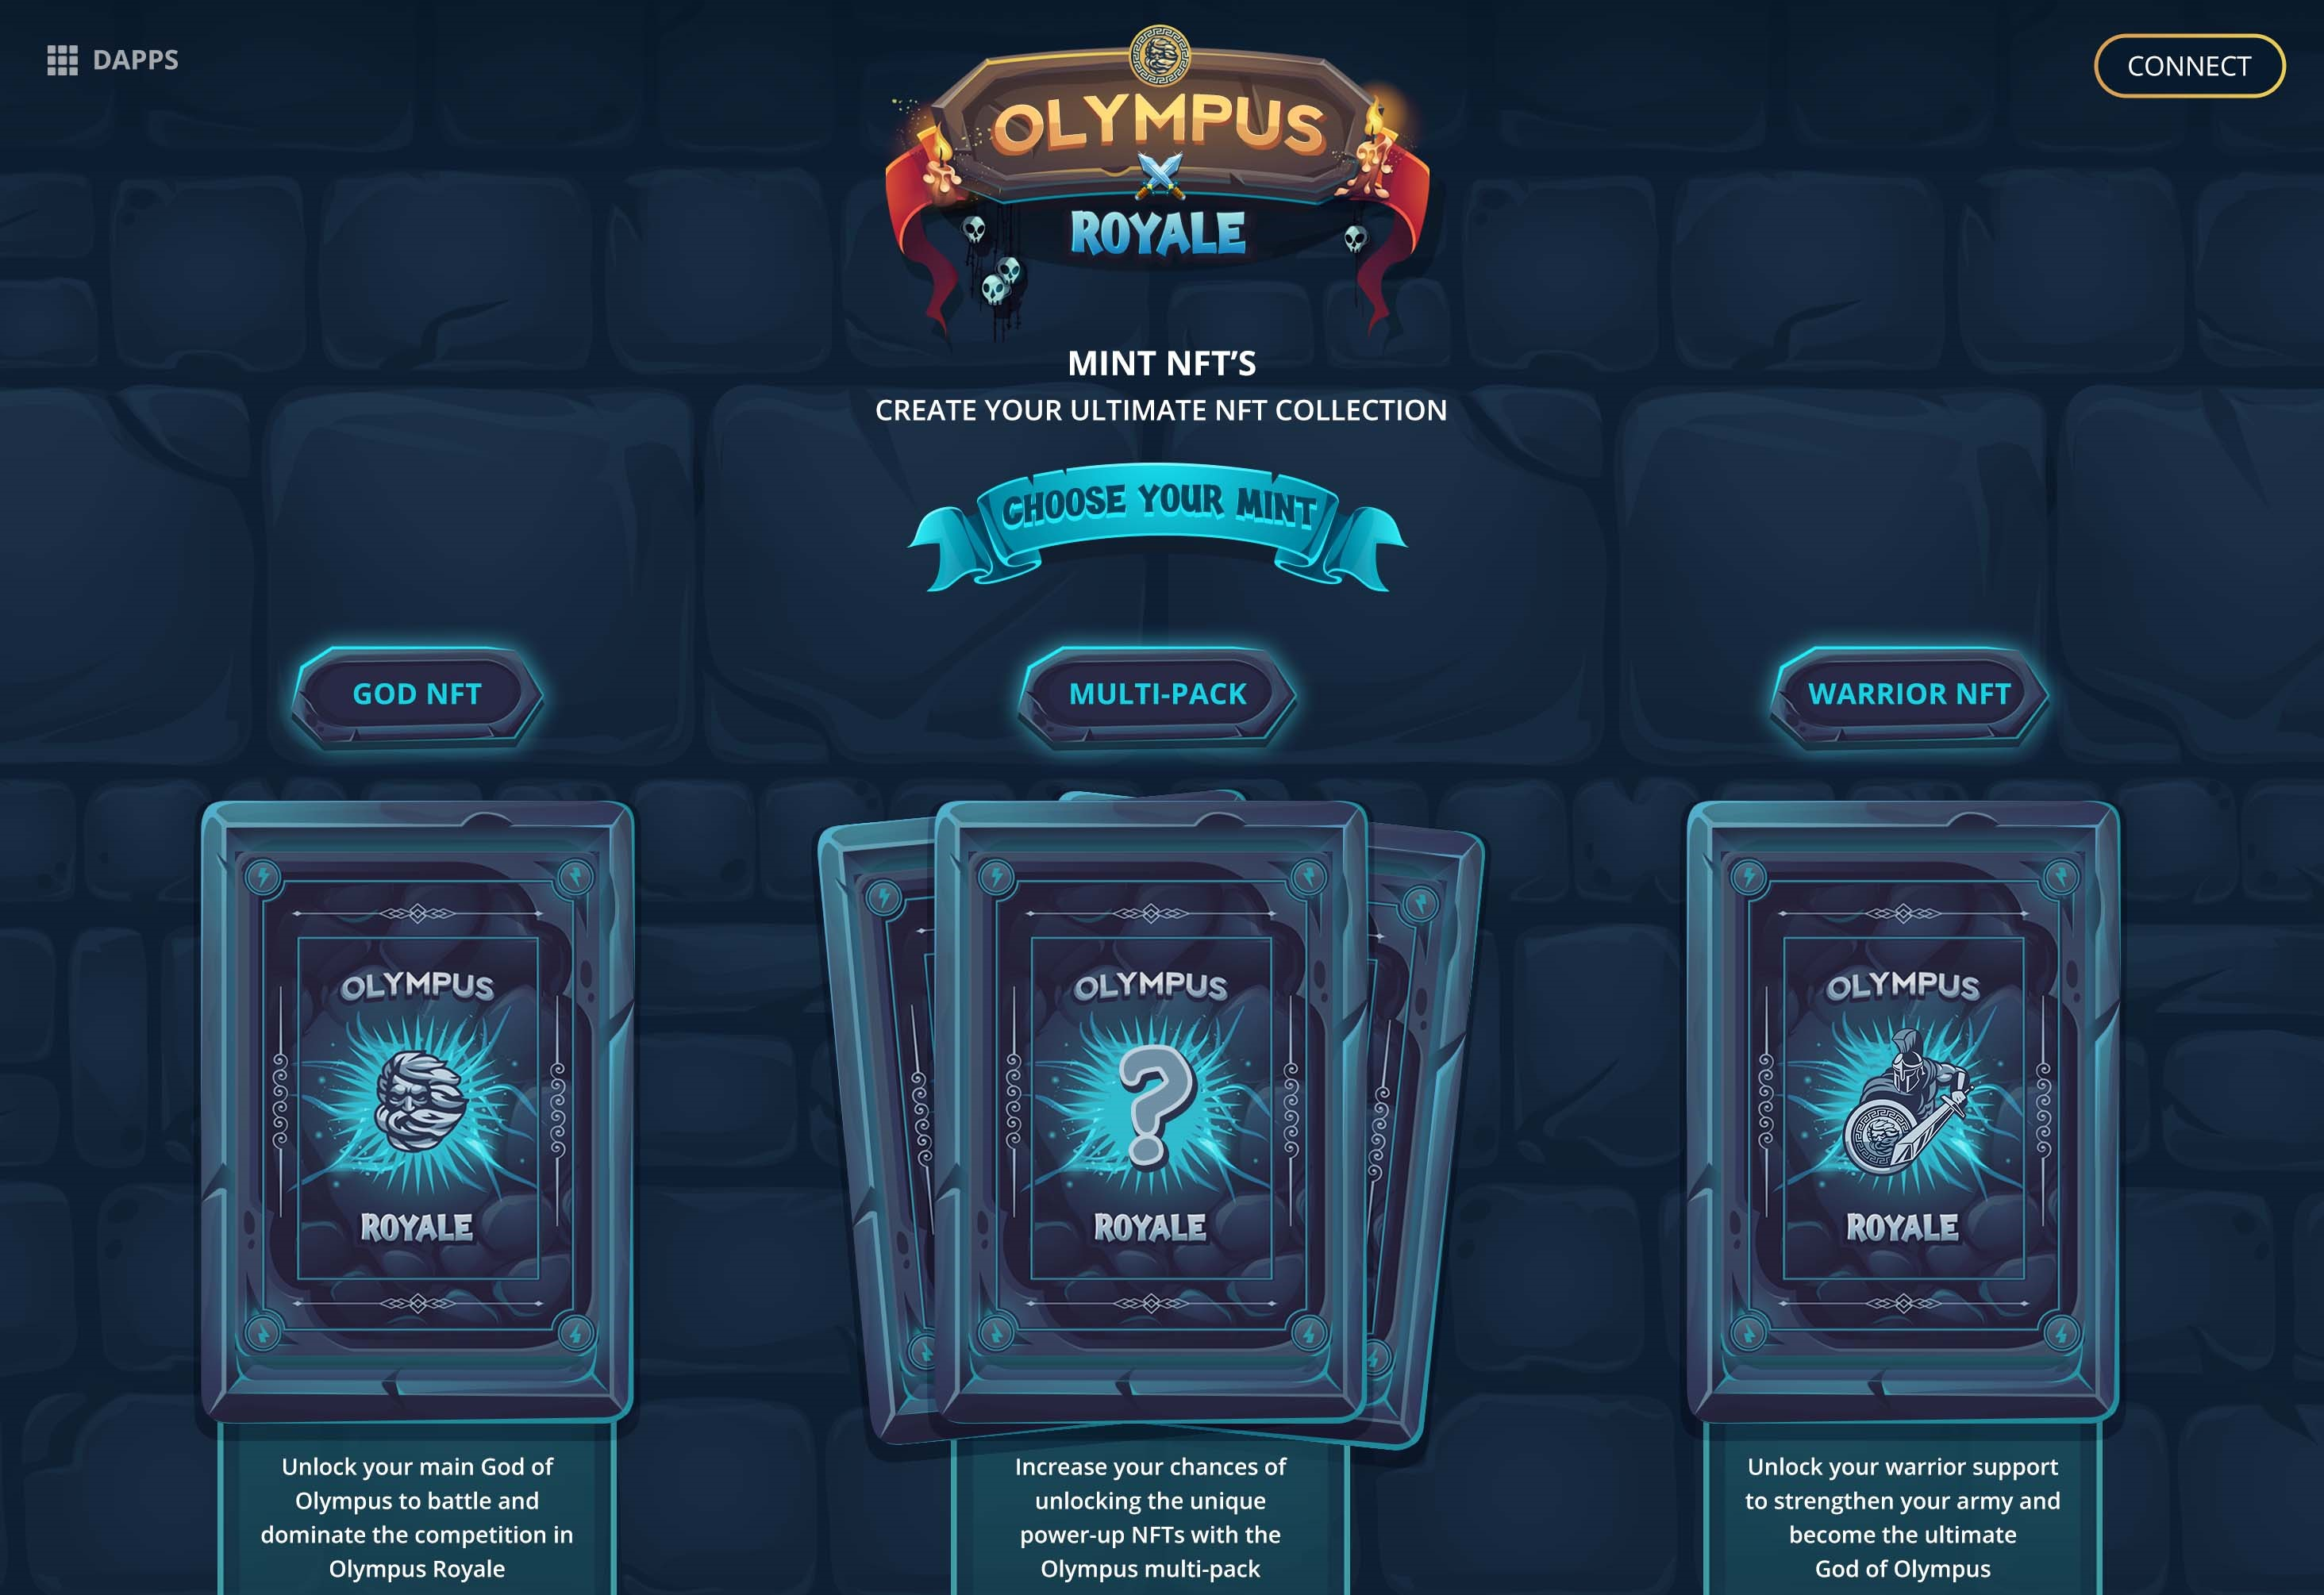 Olympus Locker, Pre-Sale Launchpad, and NFT game